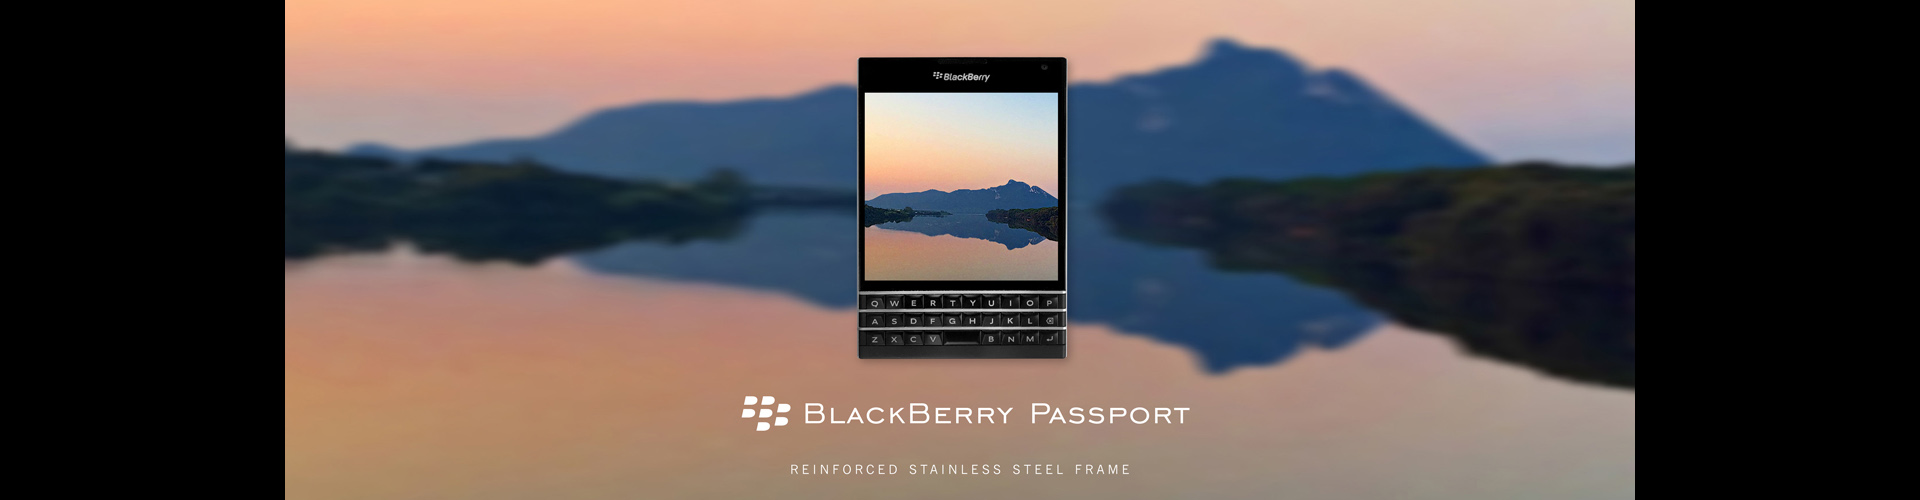 BlackBerry Passport 1